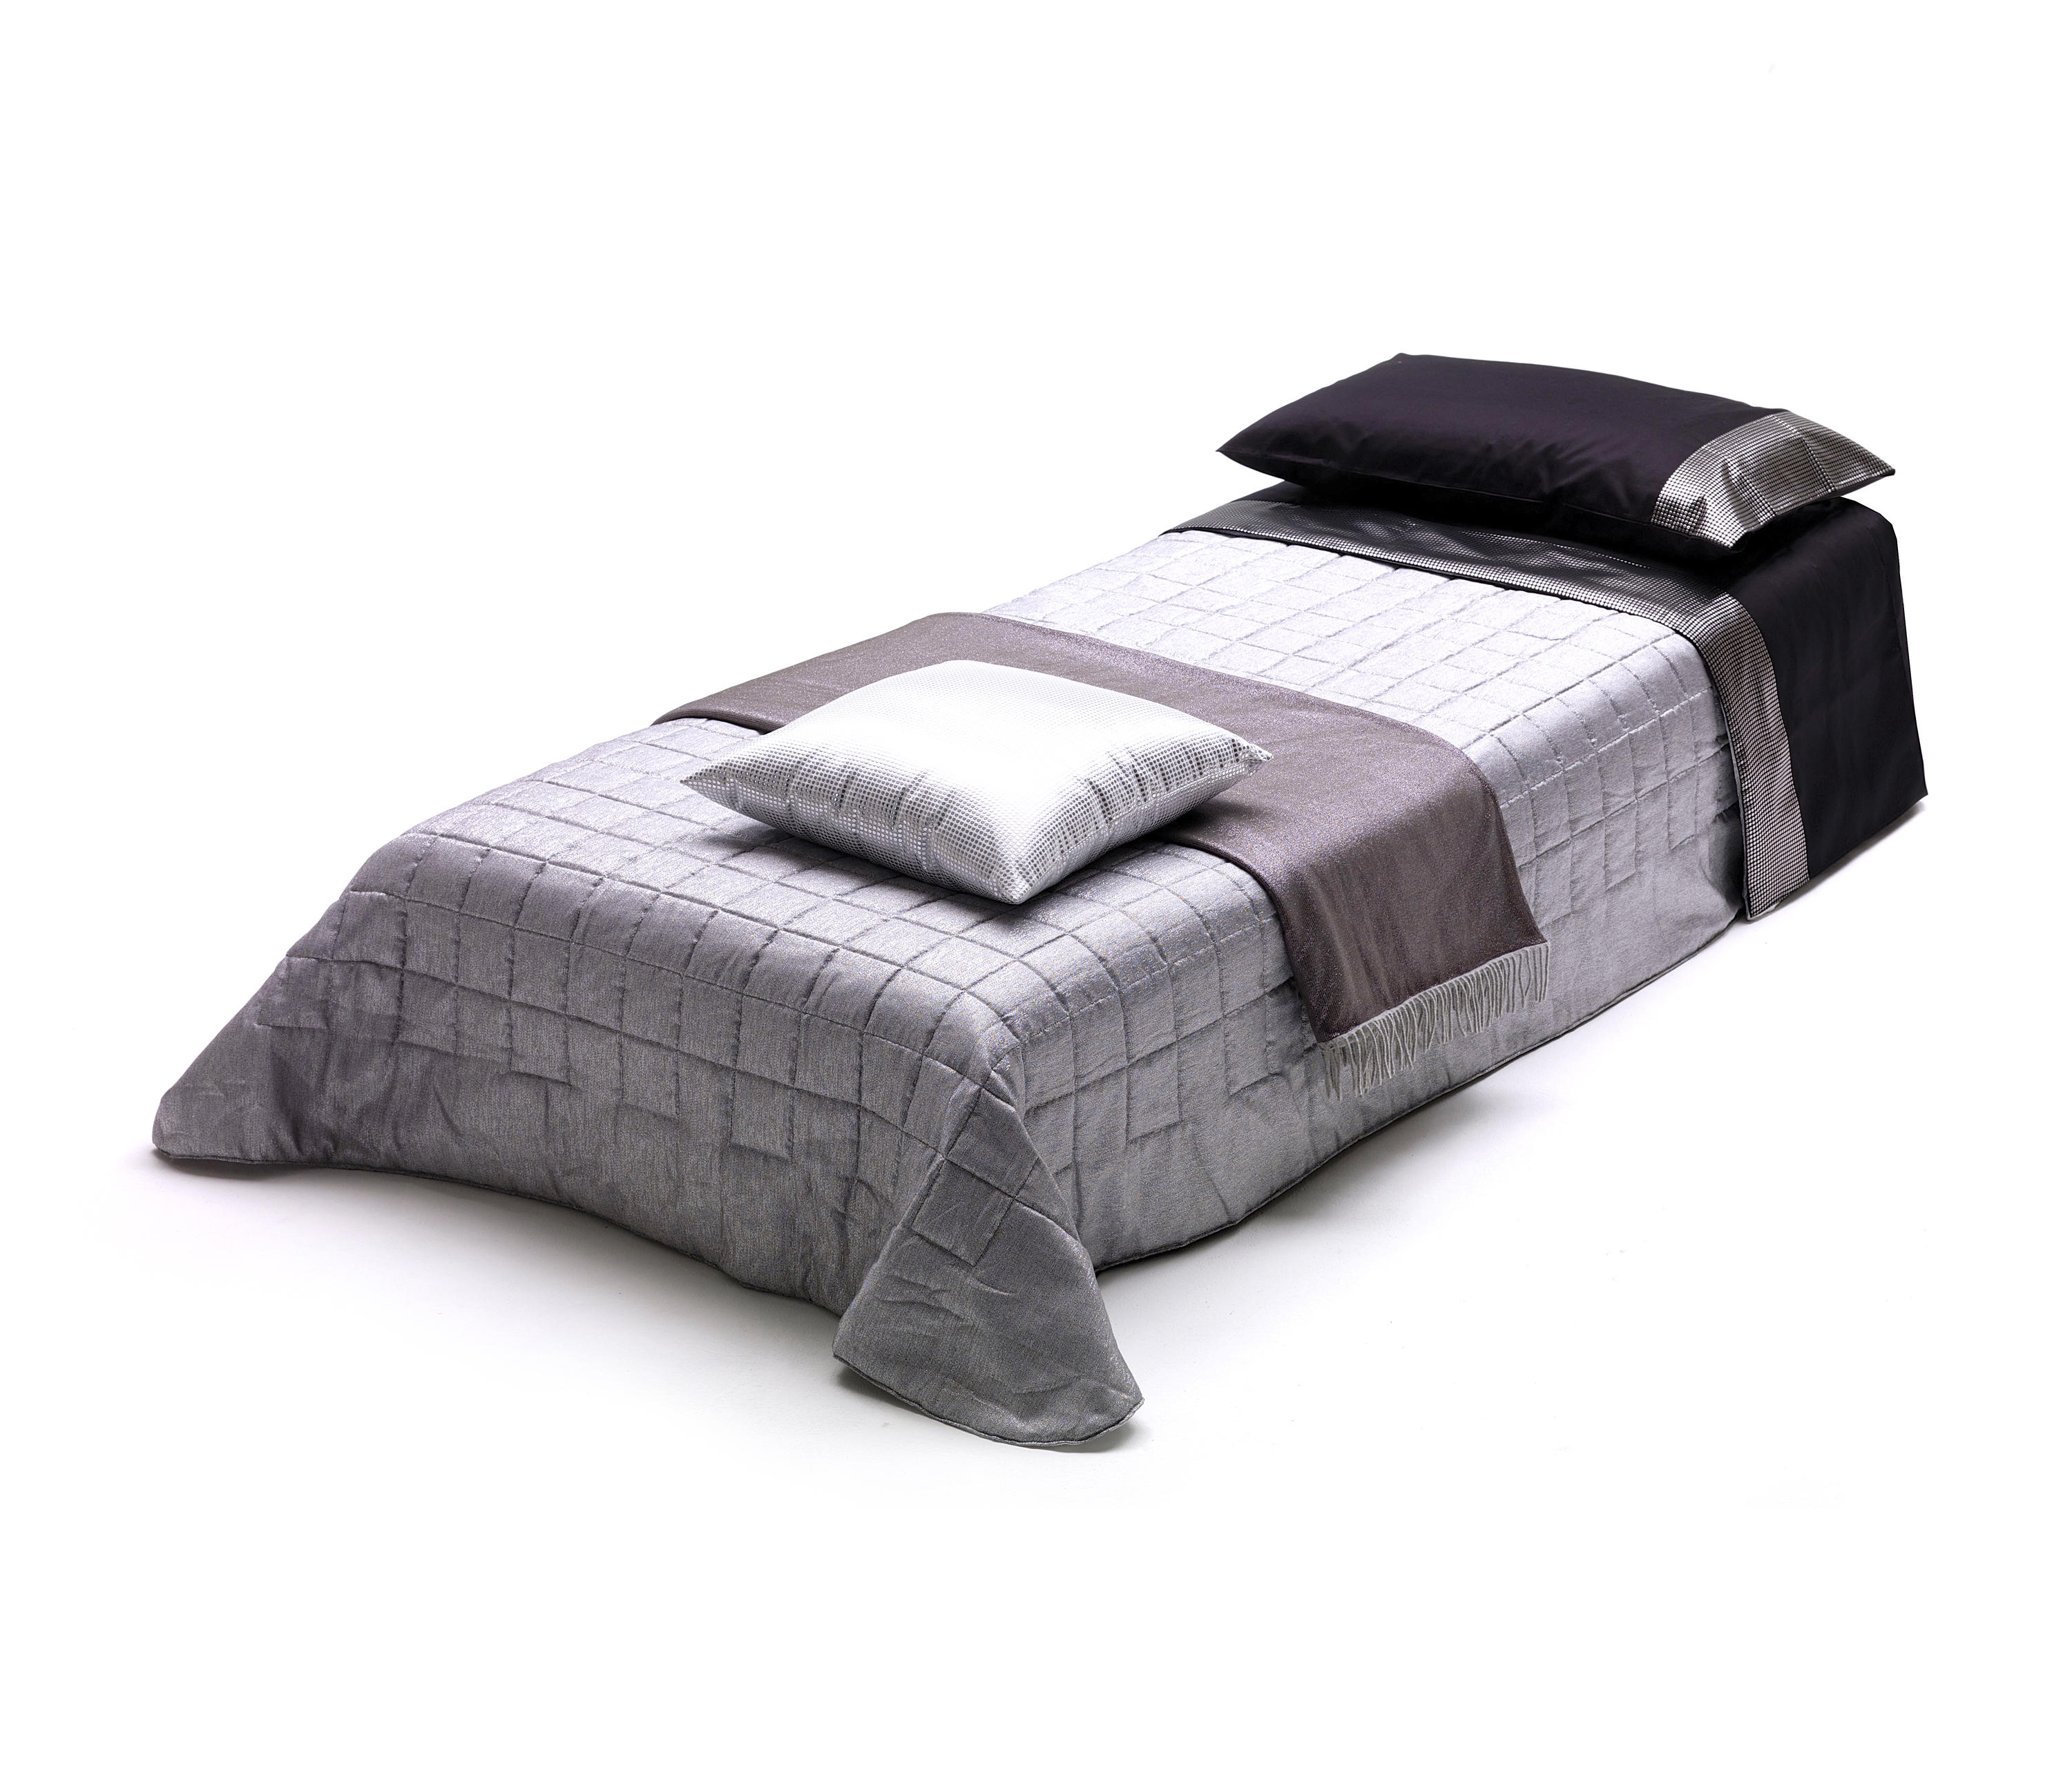 bill sofa beds from milano bedding architonic. Black Bedroom Furniture Sets. Home Design Ideas